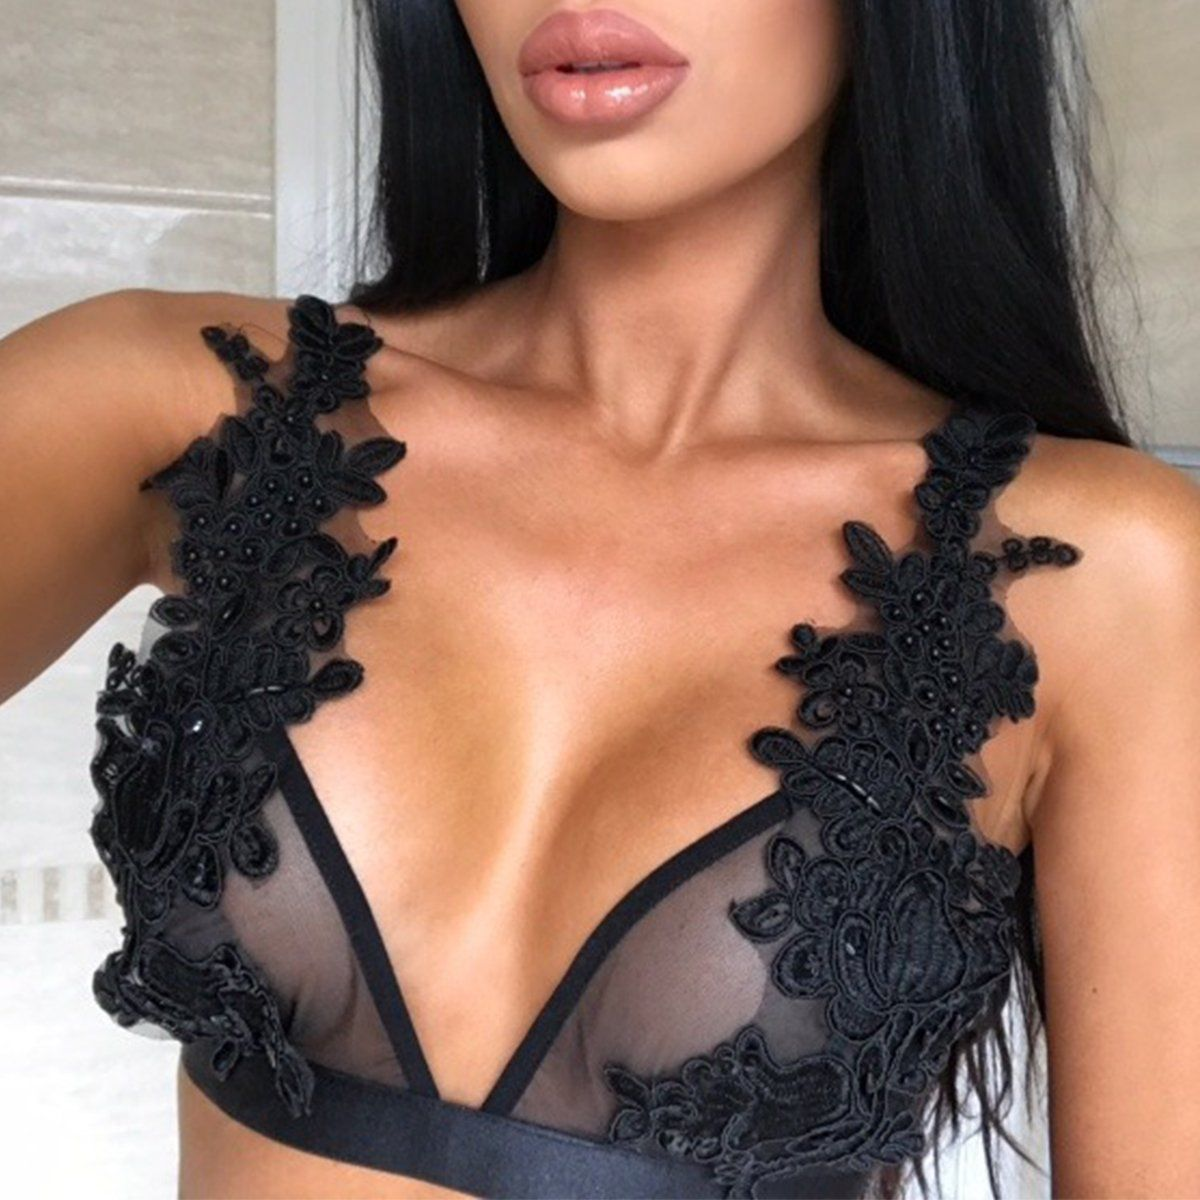 8cd3955dedf  3.59 - Women Floral Lace Bralette Bustier Crop Top Sheer Mesh Triangle  Unpadded Bra  ebay  Fashion